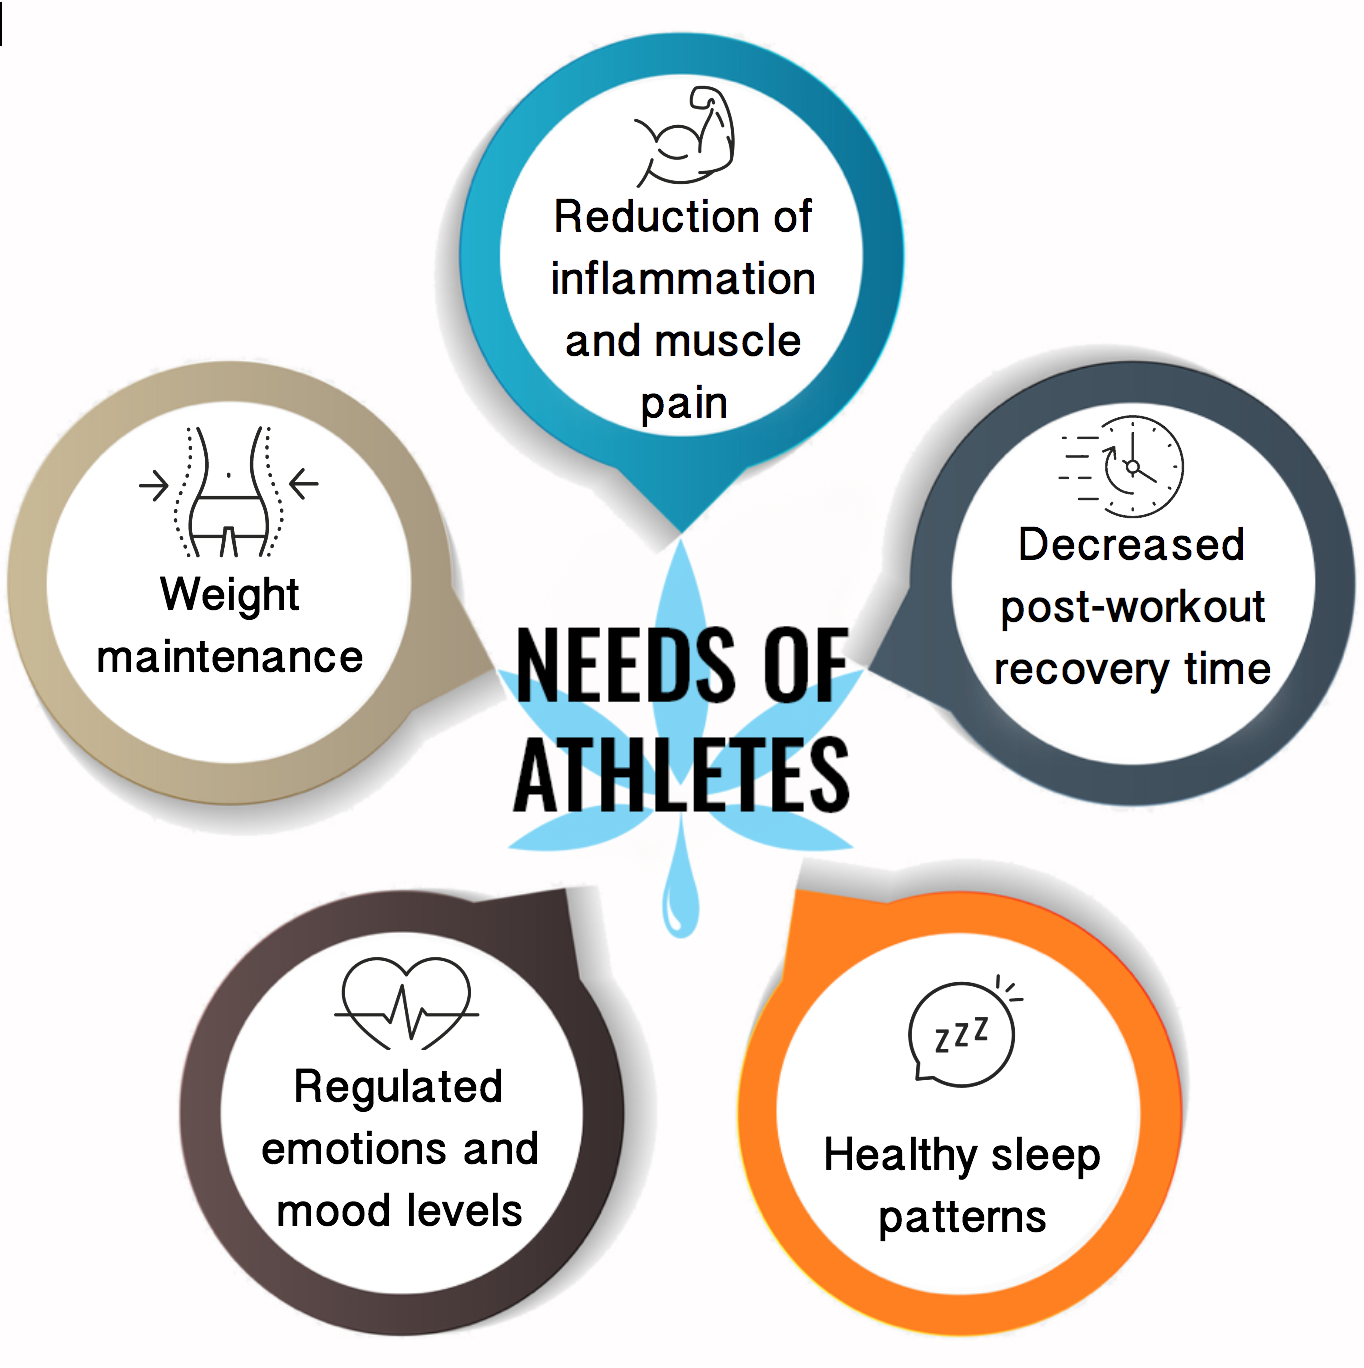 potential cbd benefits for needs of athletes info chart, reduce inflammation, improve muscle recovery time, healthy sleep patterns, regulate moods and emotions, weight management